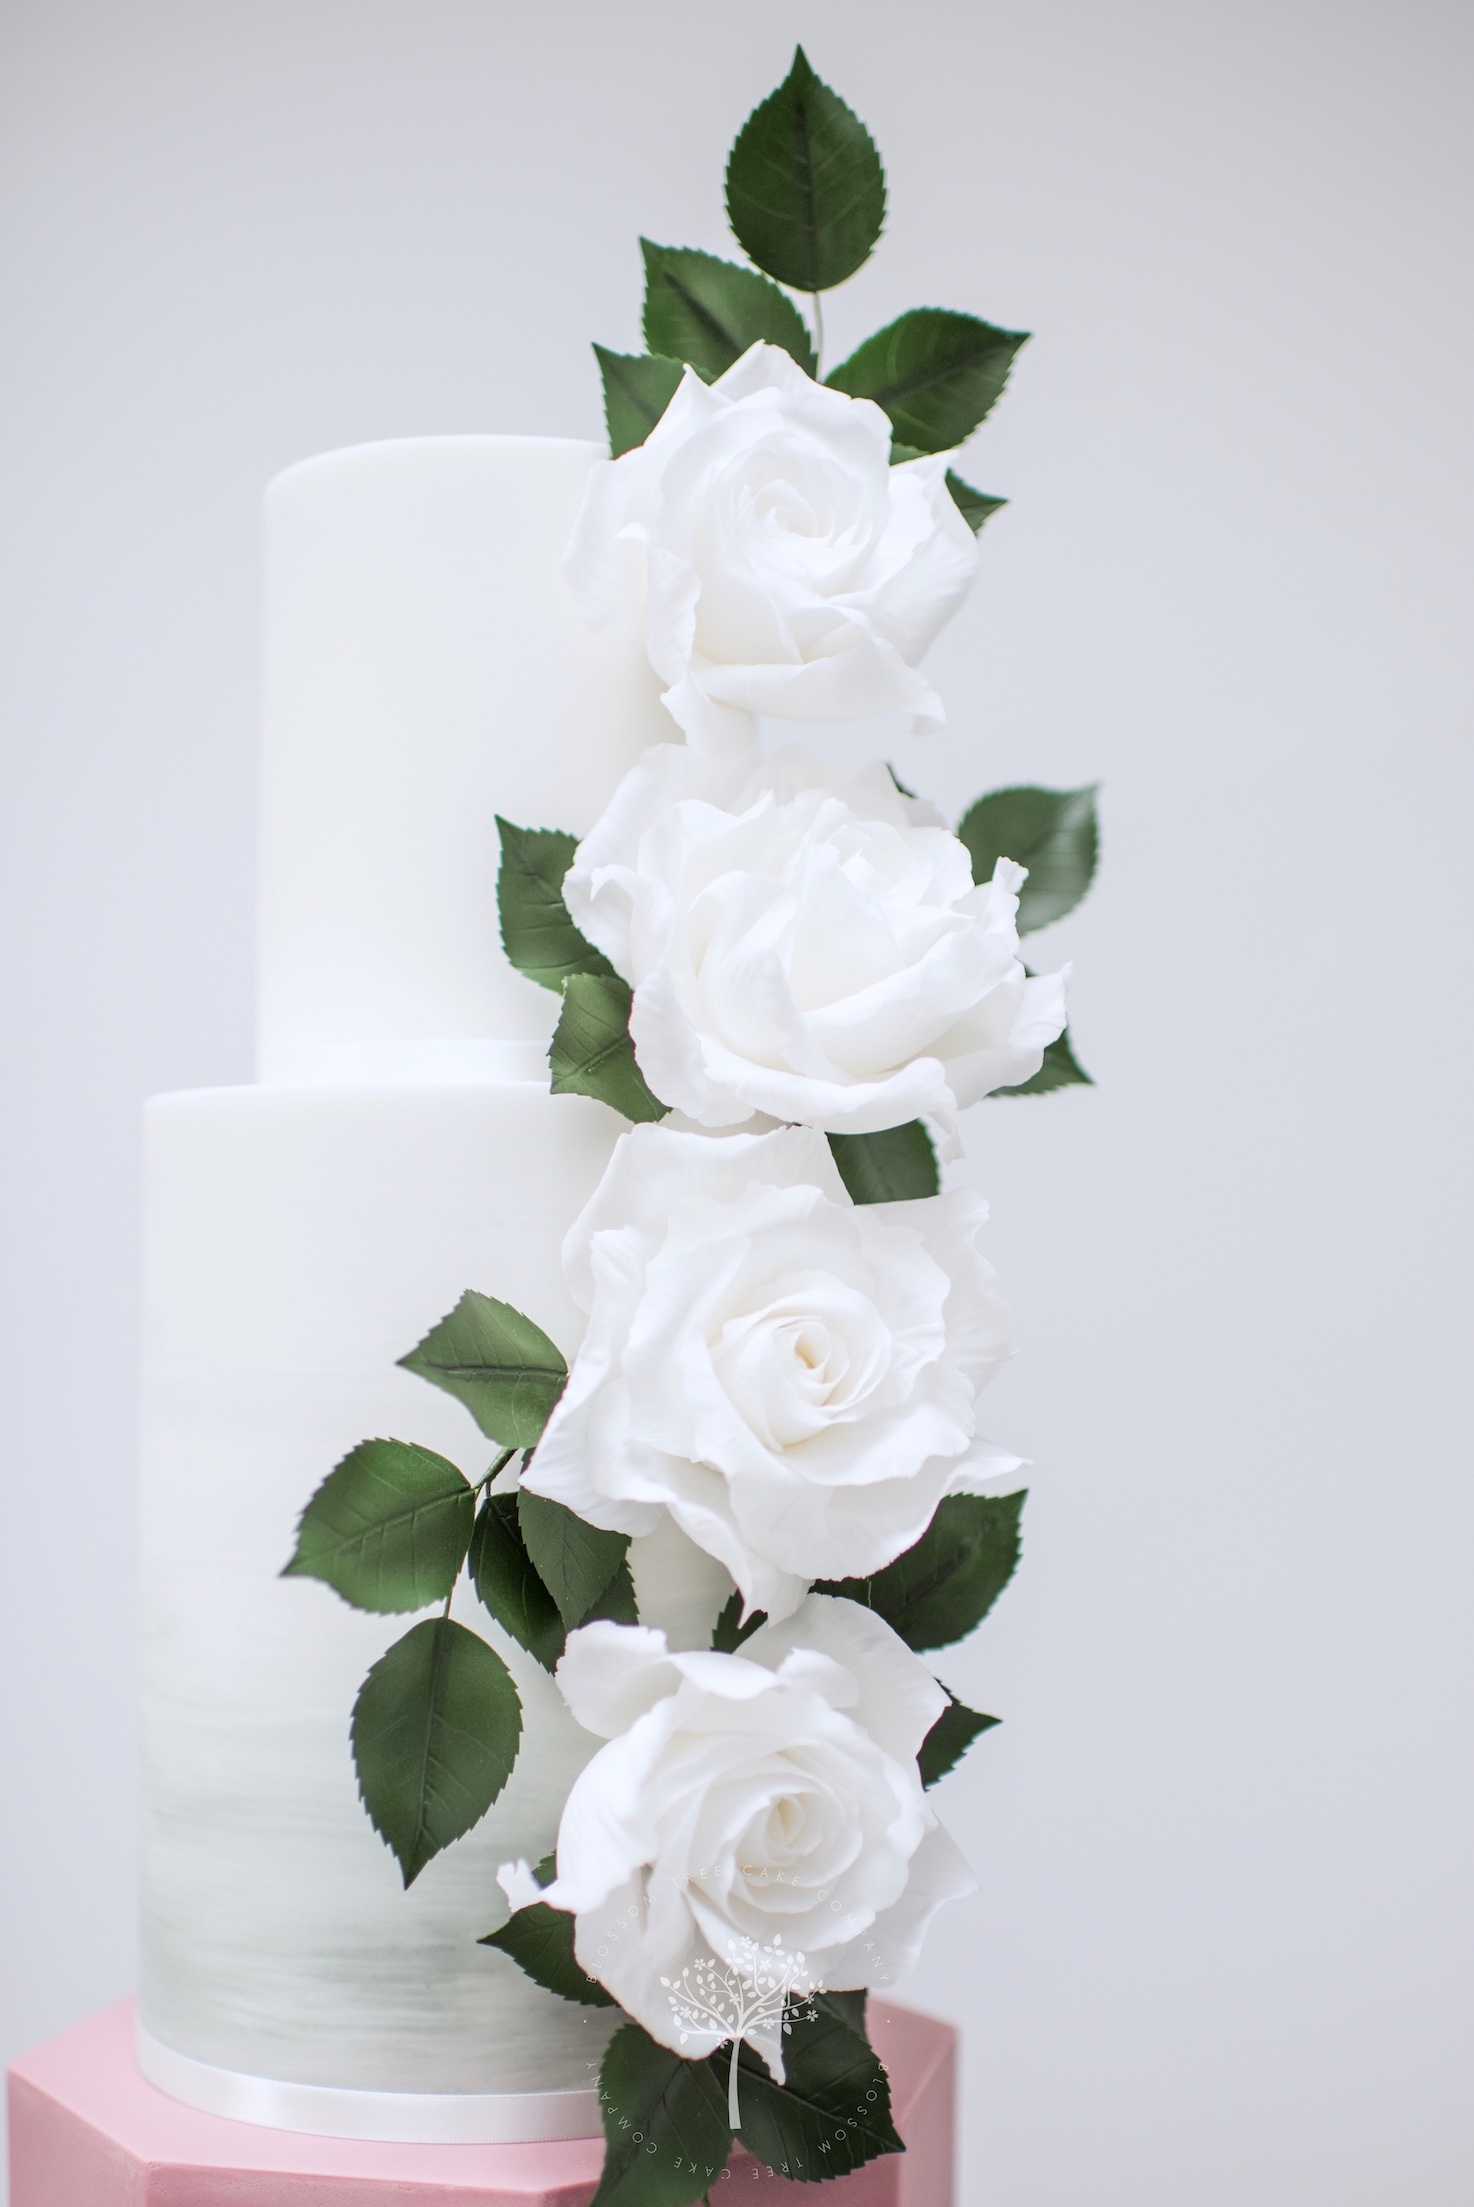 Watercolour Rose wedding cake by Blossom Tree Cake Company Harrogate North Yorkshire - top sugar roses.jpg